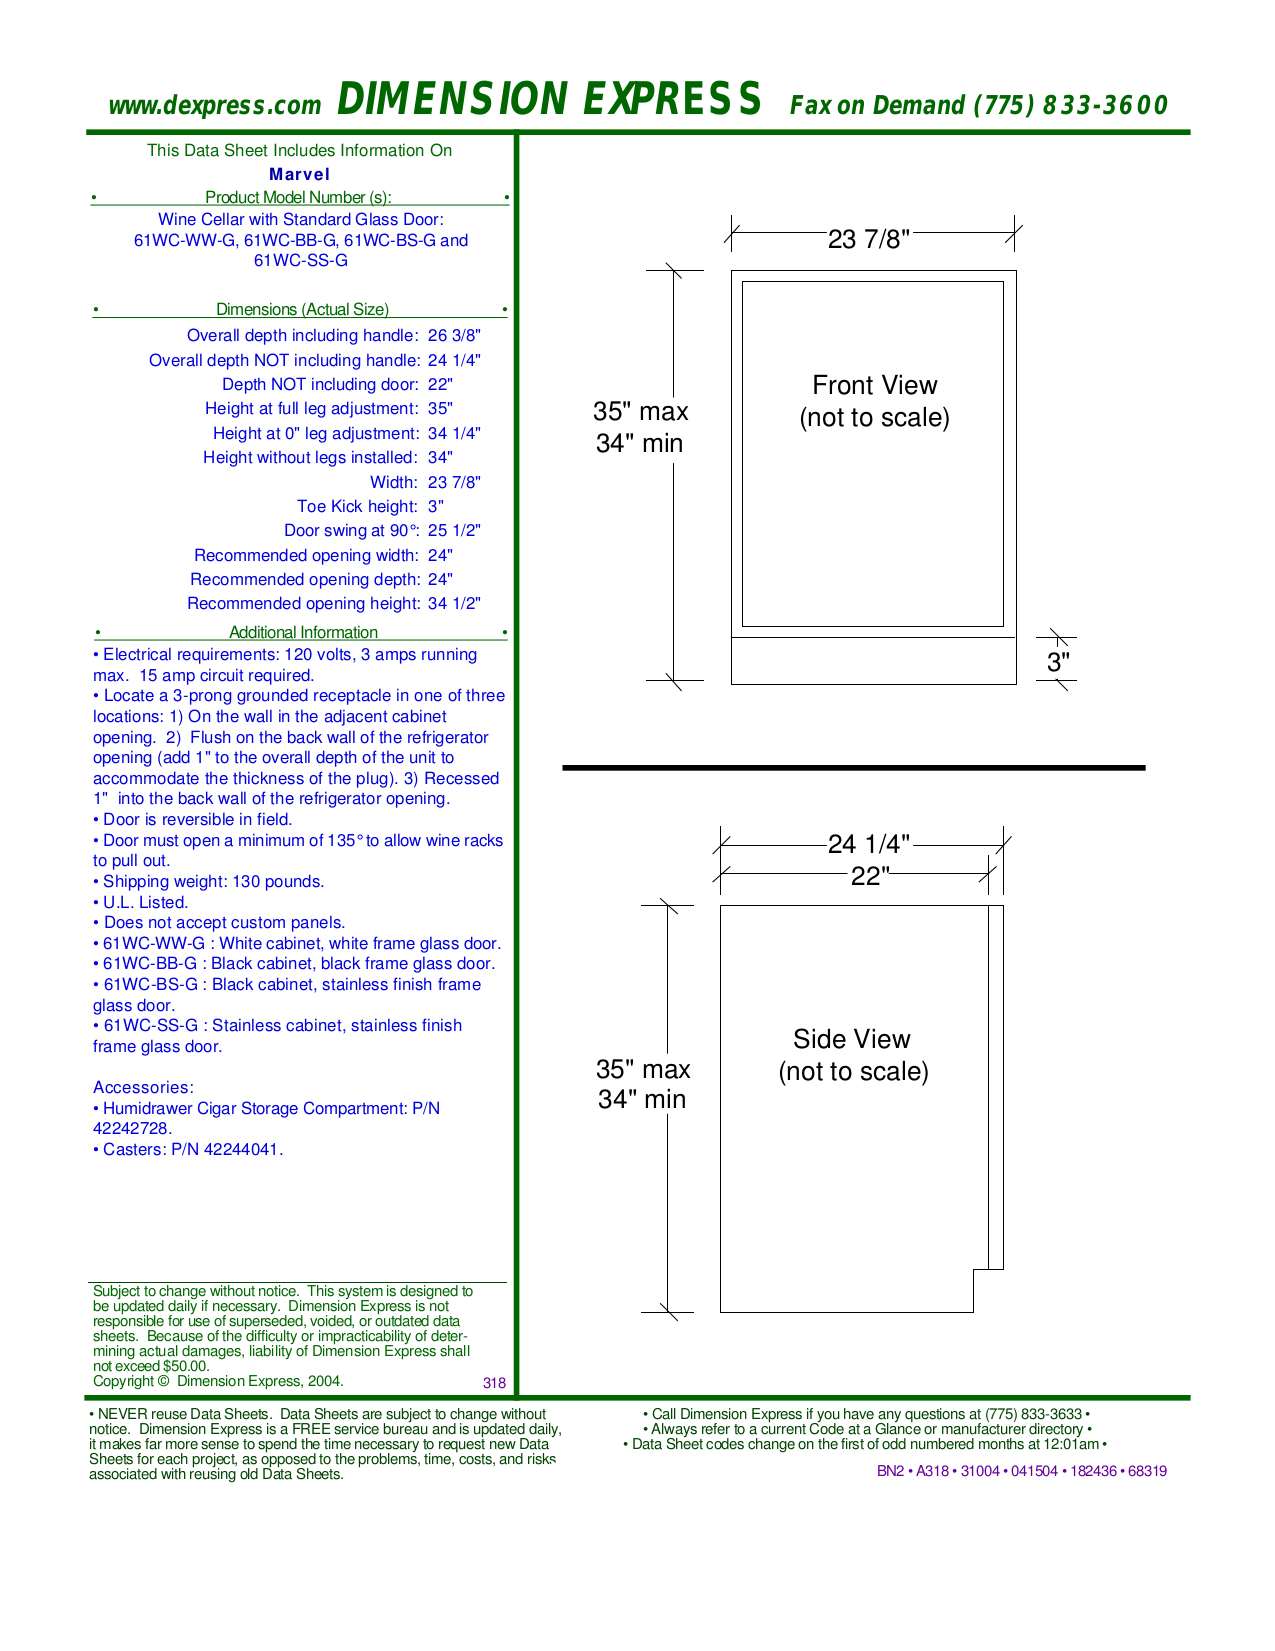 pdf for Marvel Refrigerator 61WC-BB-G manual